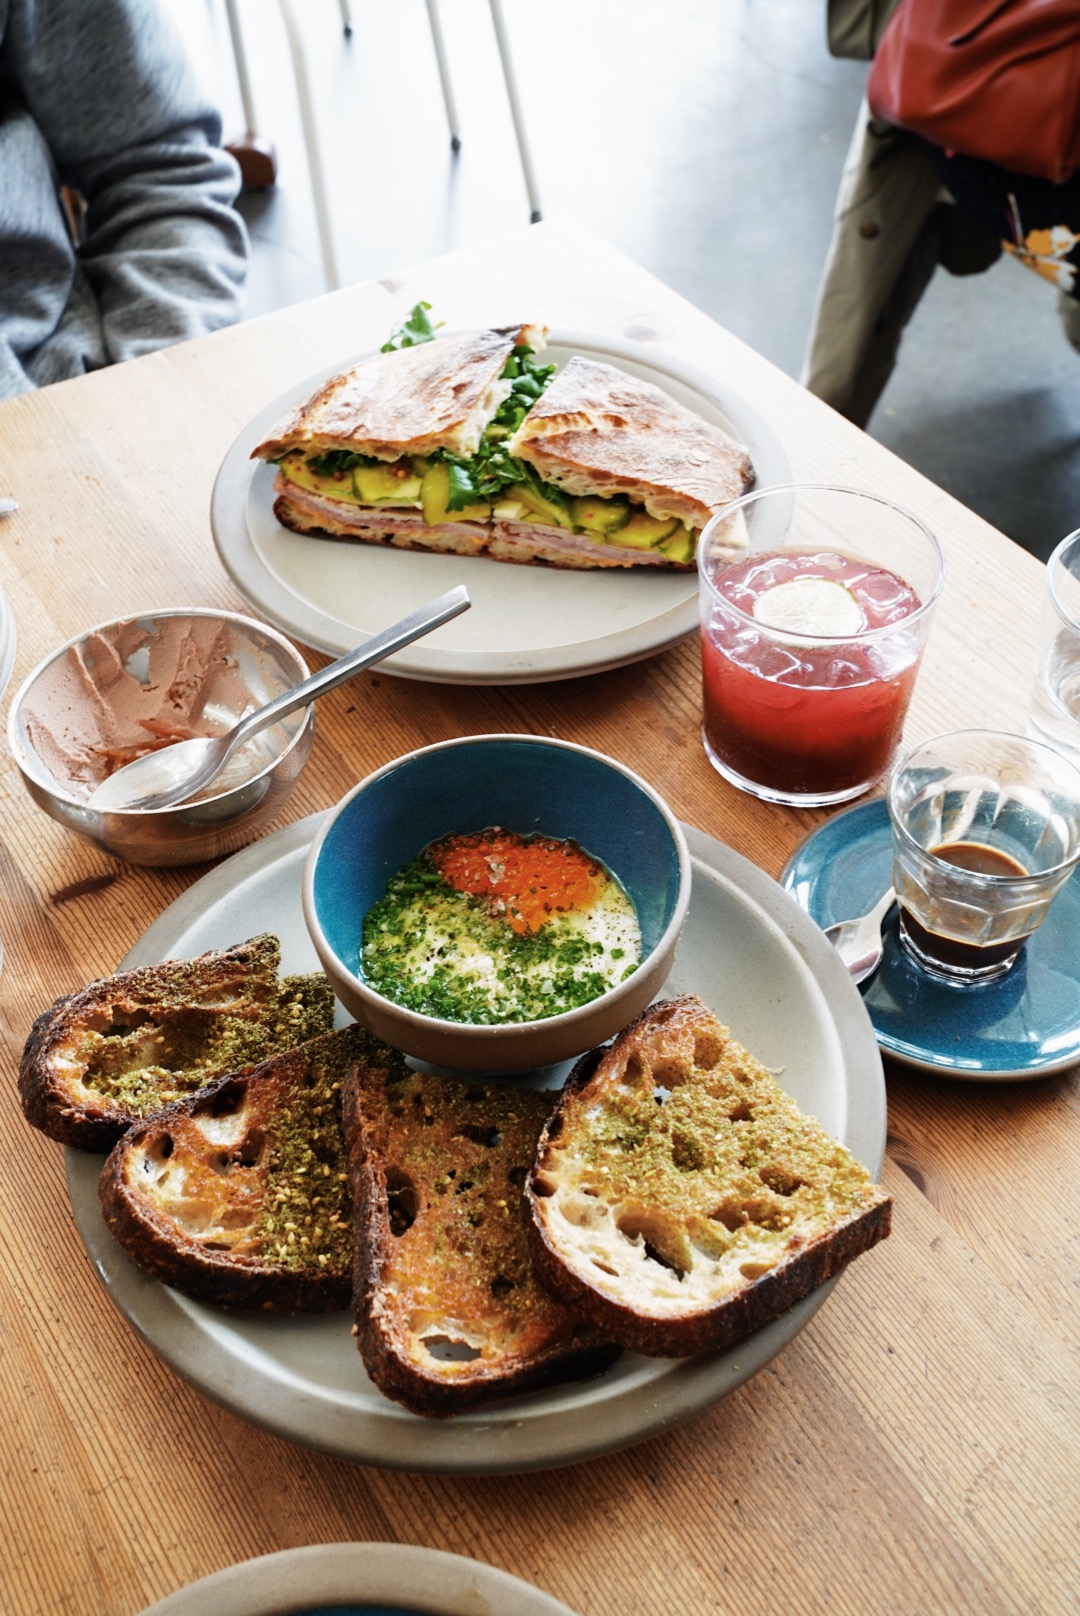 Coddled Eggs, trout roe, horseradish, za'atar & grilled bread,  and Flatbread Sandwich on the back